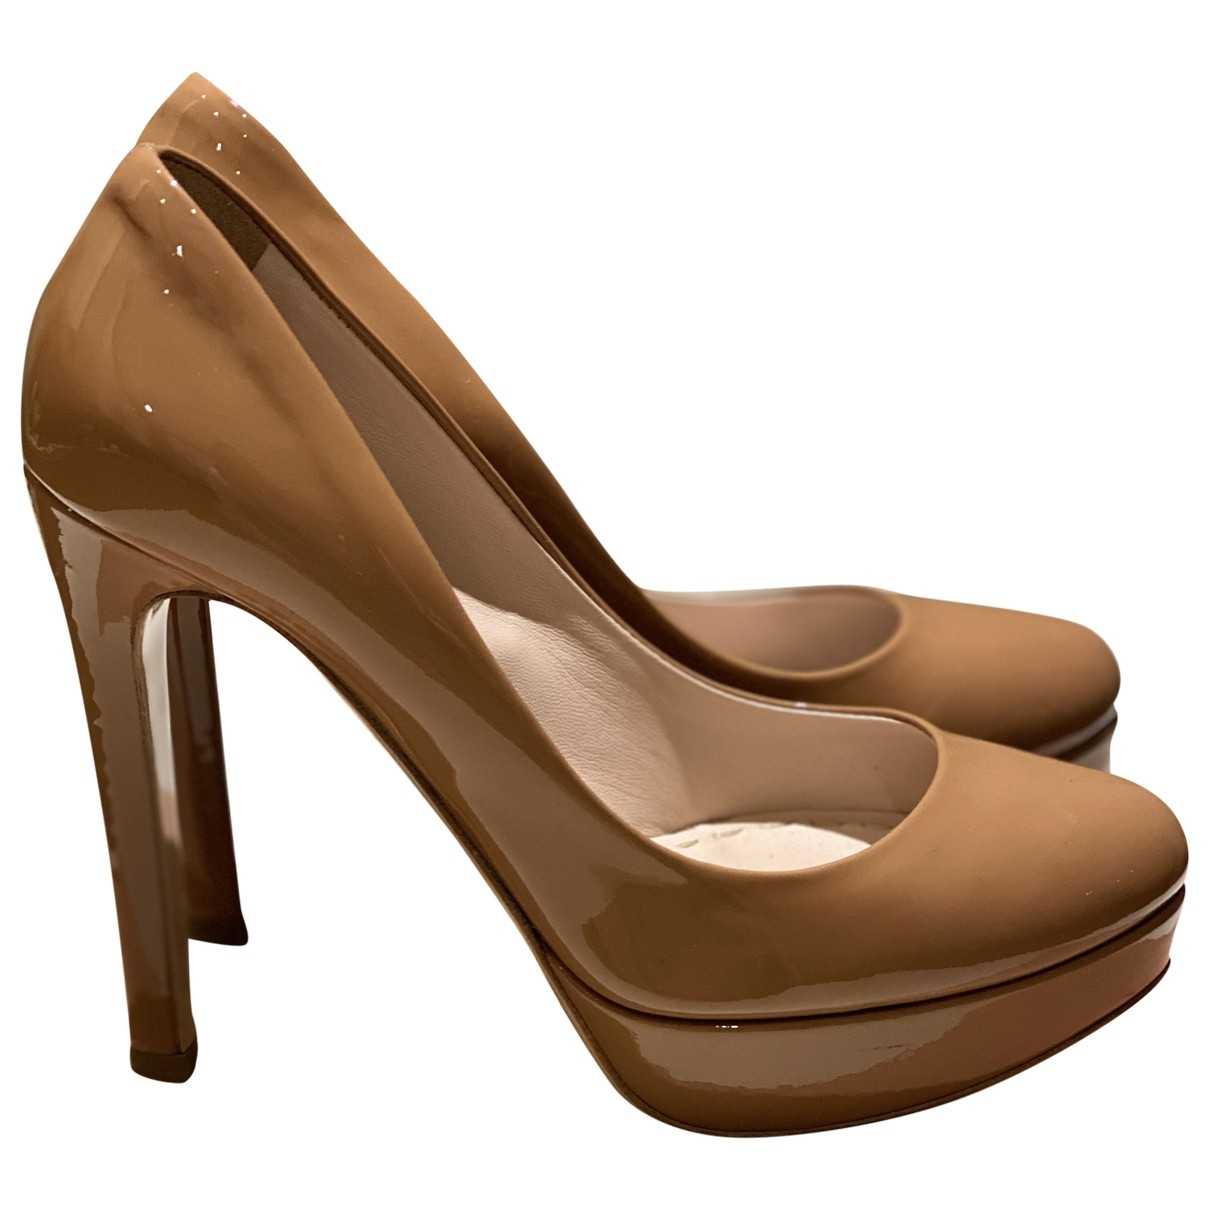 Miu Miu \N Camel Leather Heels for Women 36 EU